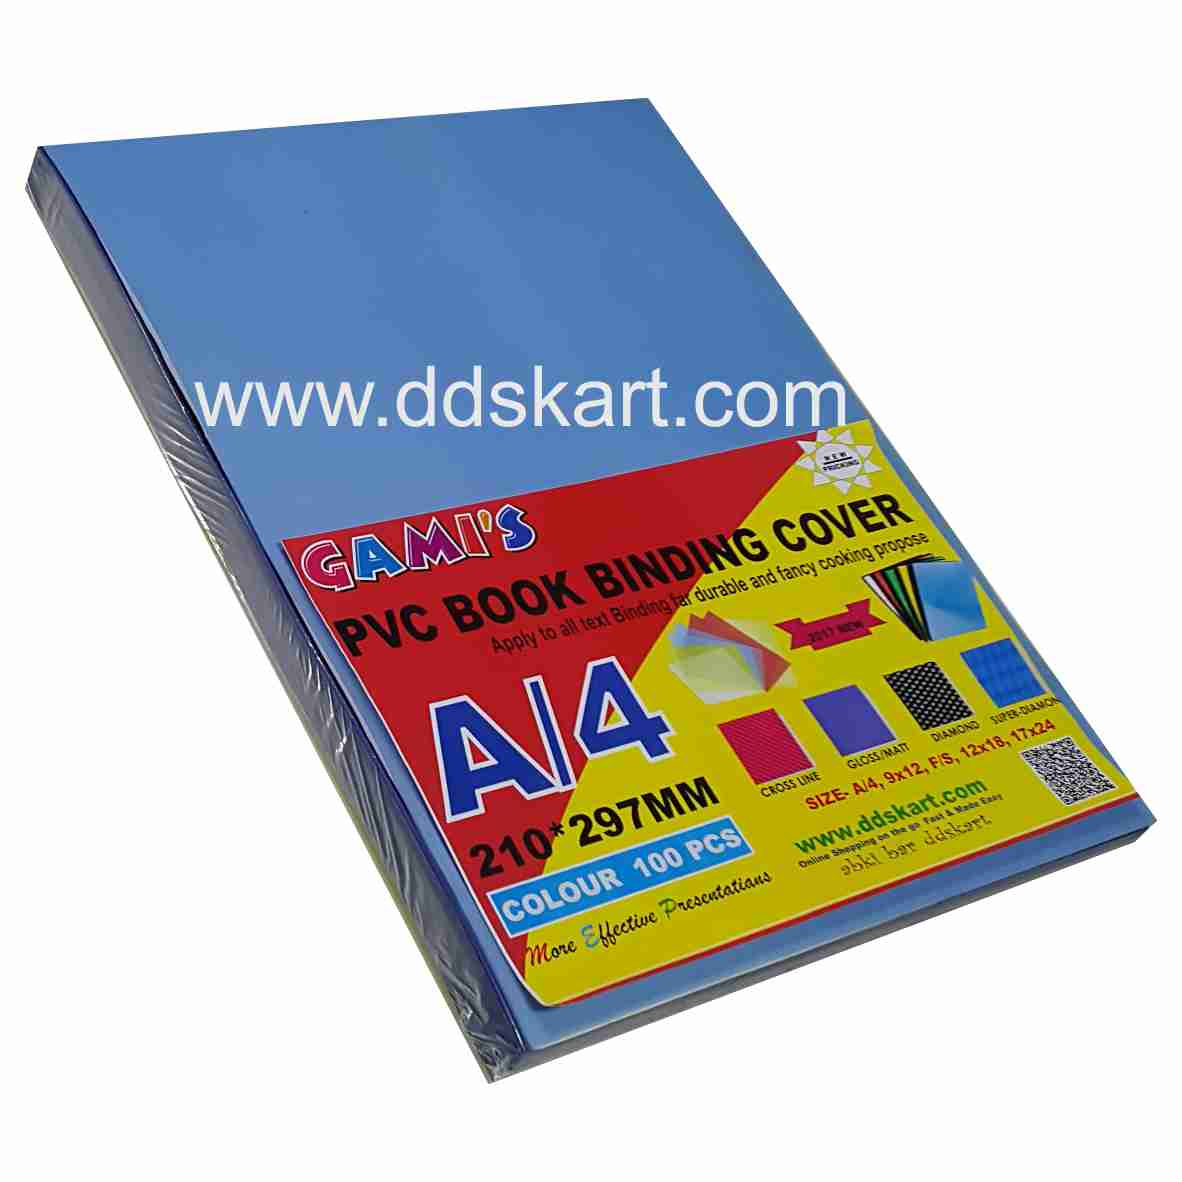 GAMI'S PVC Book Binding SHEET SAND MATTE  A4 ( BLUE TRANSPARENT)